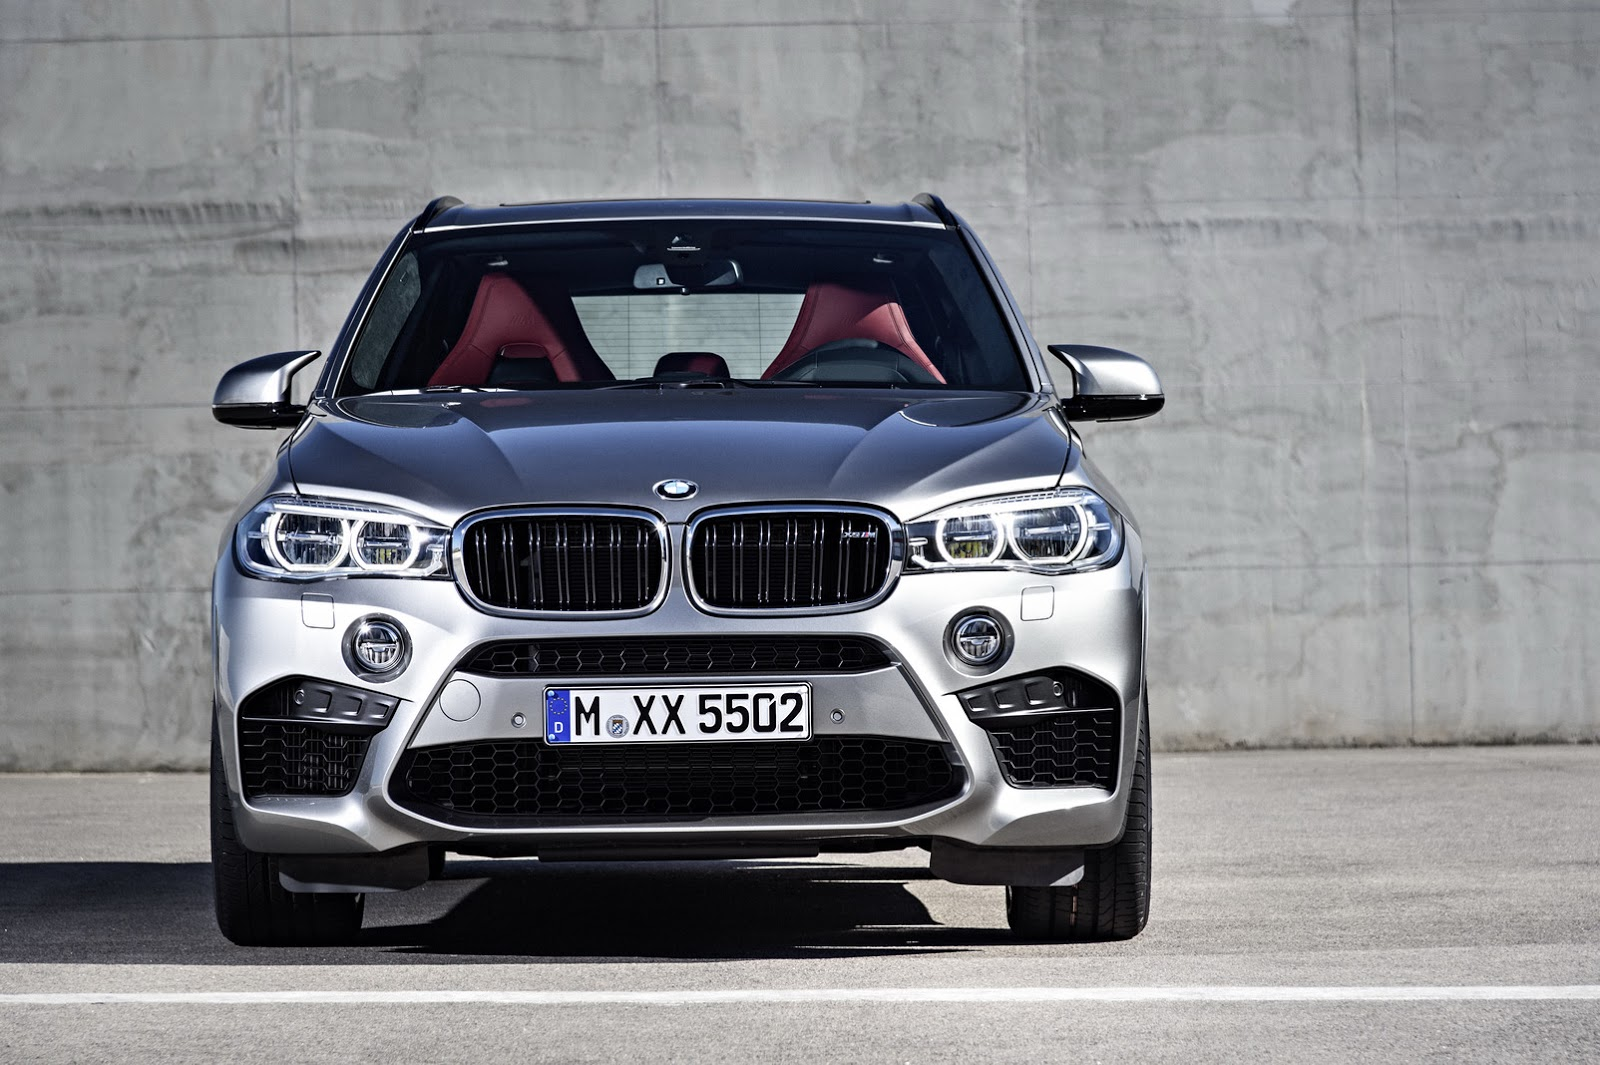 BMW unveils 2016 X5 M and X6 M super CUVs - Autoblog